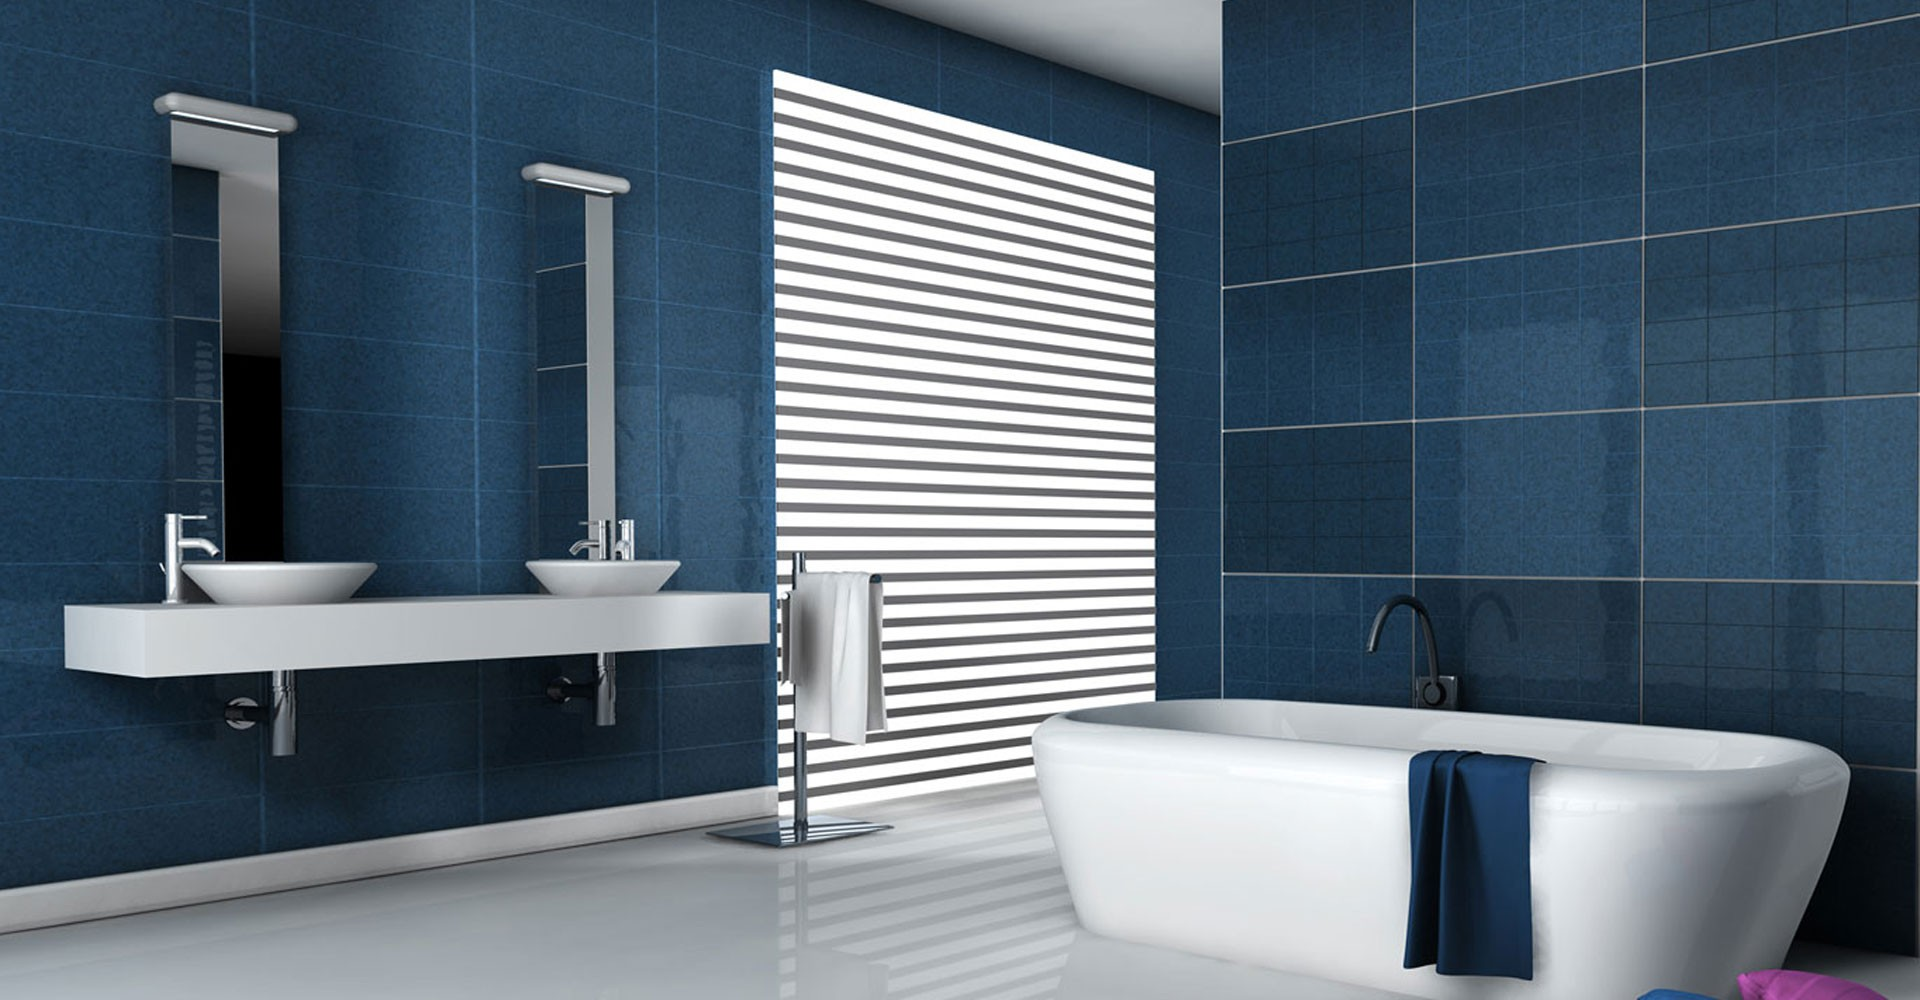 5 Awesome Tips for Heating Up Your San Shower Room This Winter